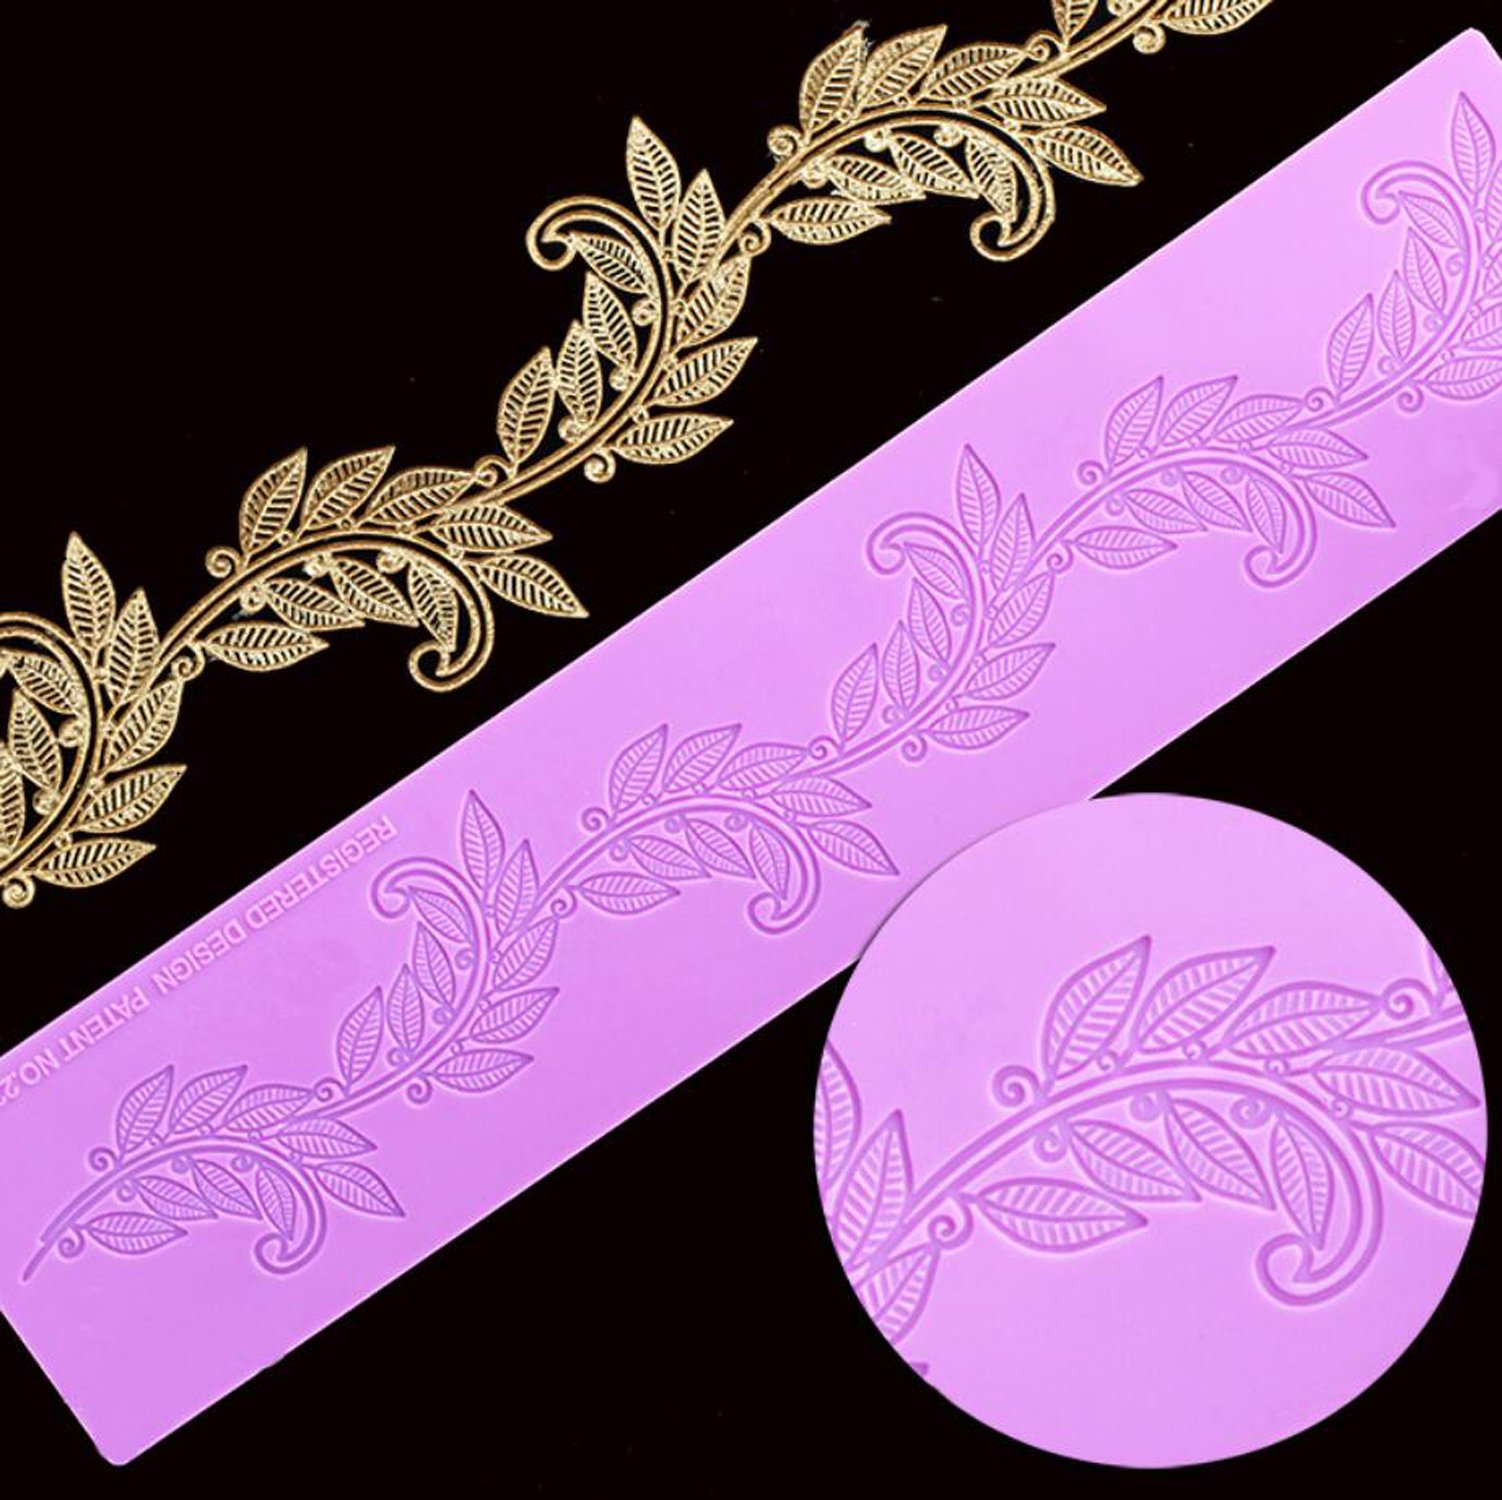 Silicone Lace, KOOTIPS Novelty Giant Lace Silicone Mold Sugarcraft Wedding Cake Decor Tools Impression Gum Pastry Tool Kitchen Tool Sugar Paste Baking Mould Cookie Pastry (leaf silicone lace)